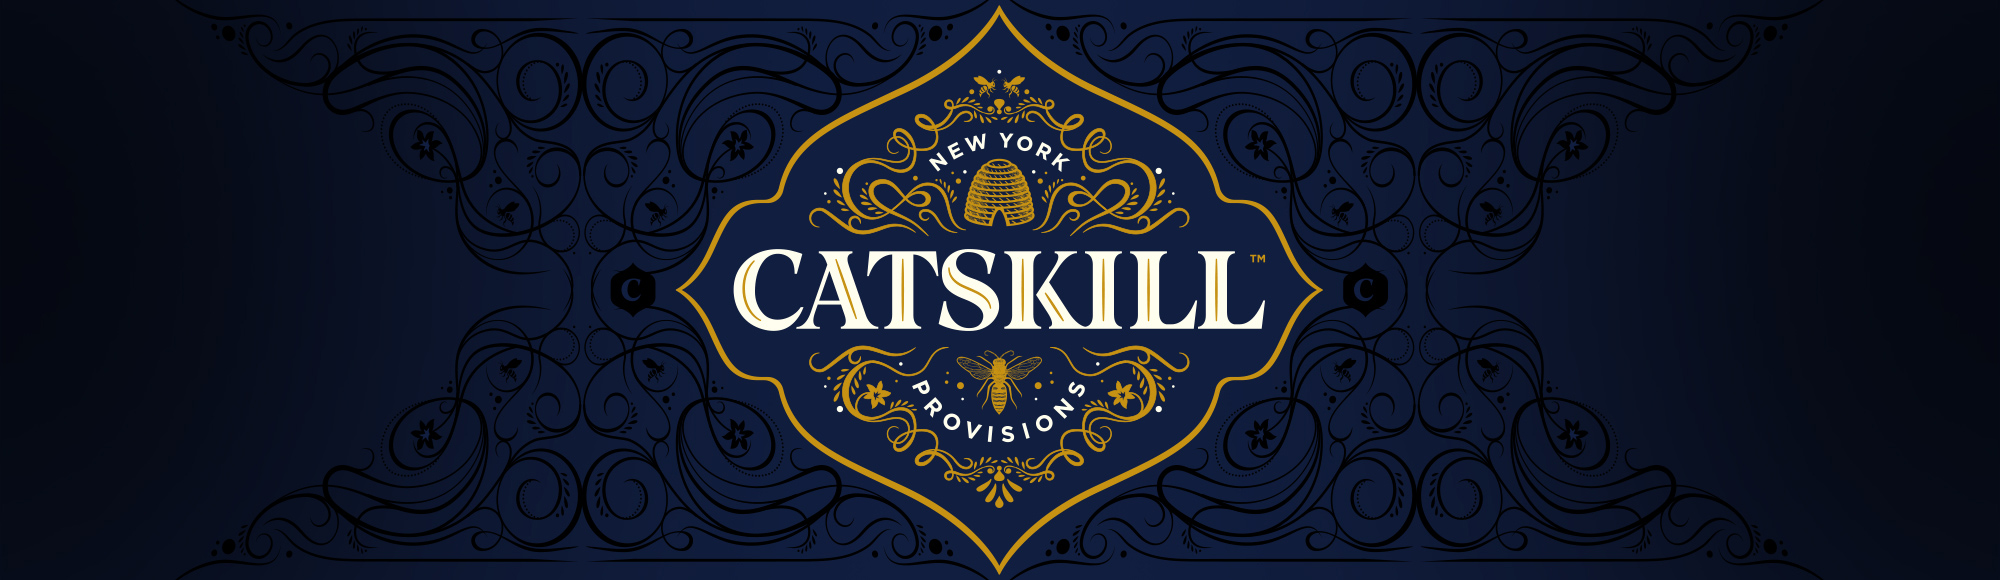 Catskill Provisions, Whiskey, Honey Whiskey, New York Whiskey